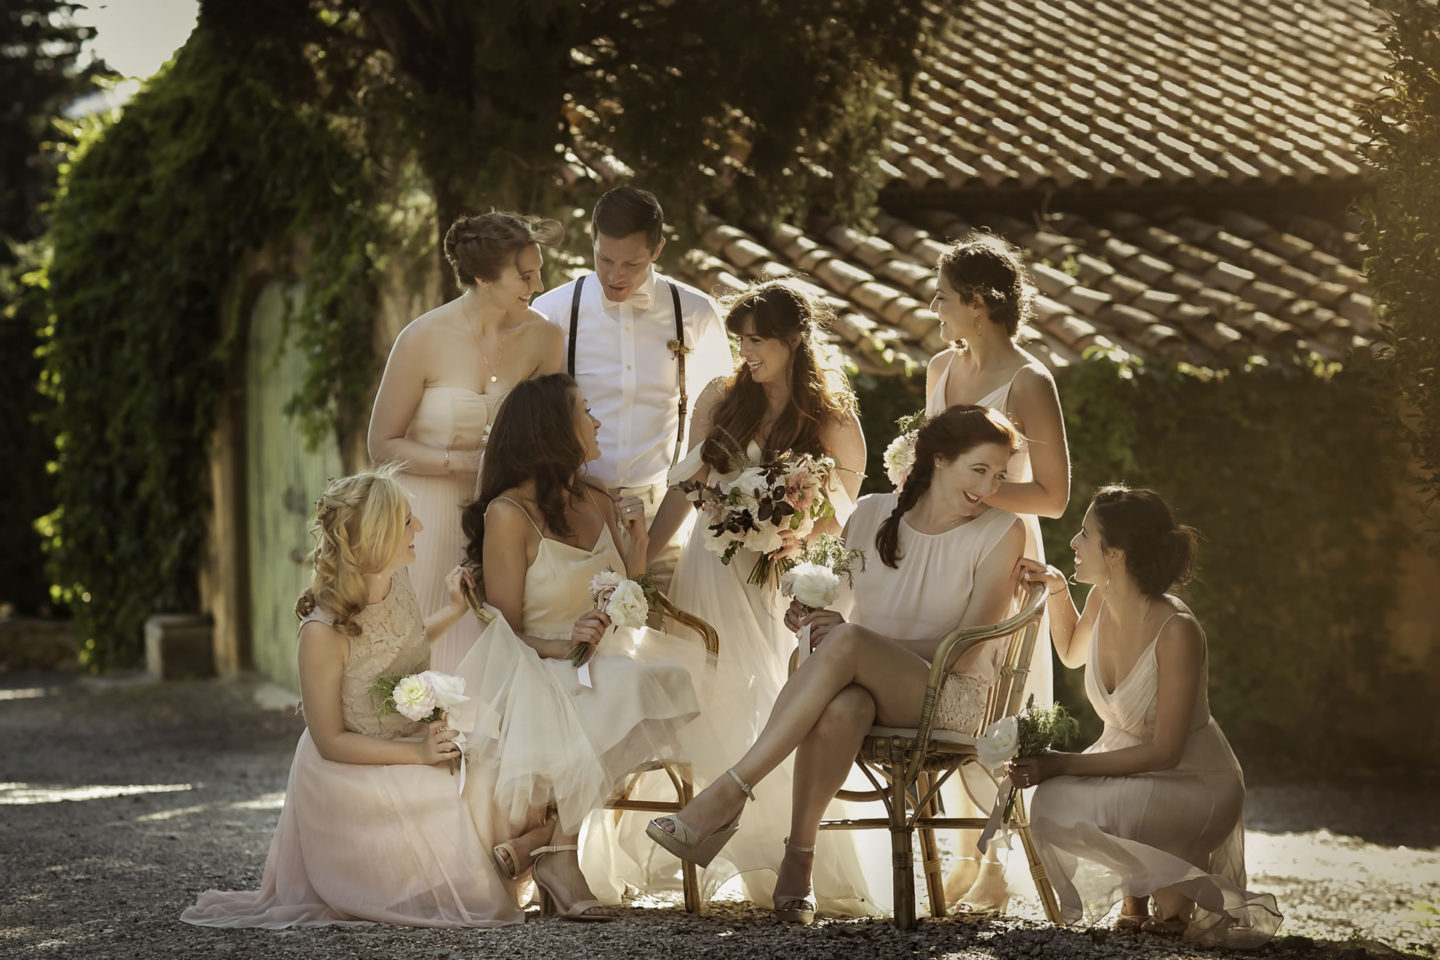 Countryside :: Groups Bridal Parties :: David Bastianoni wedding photographer